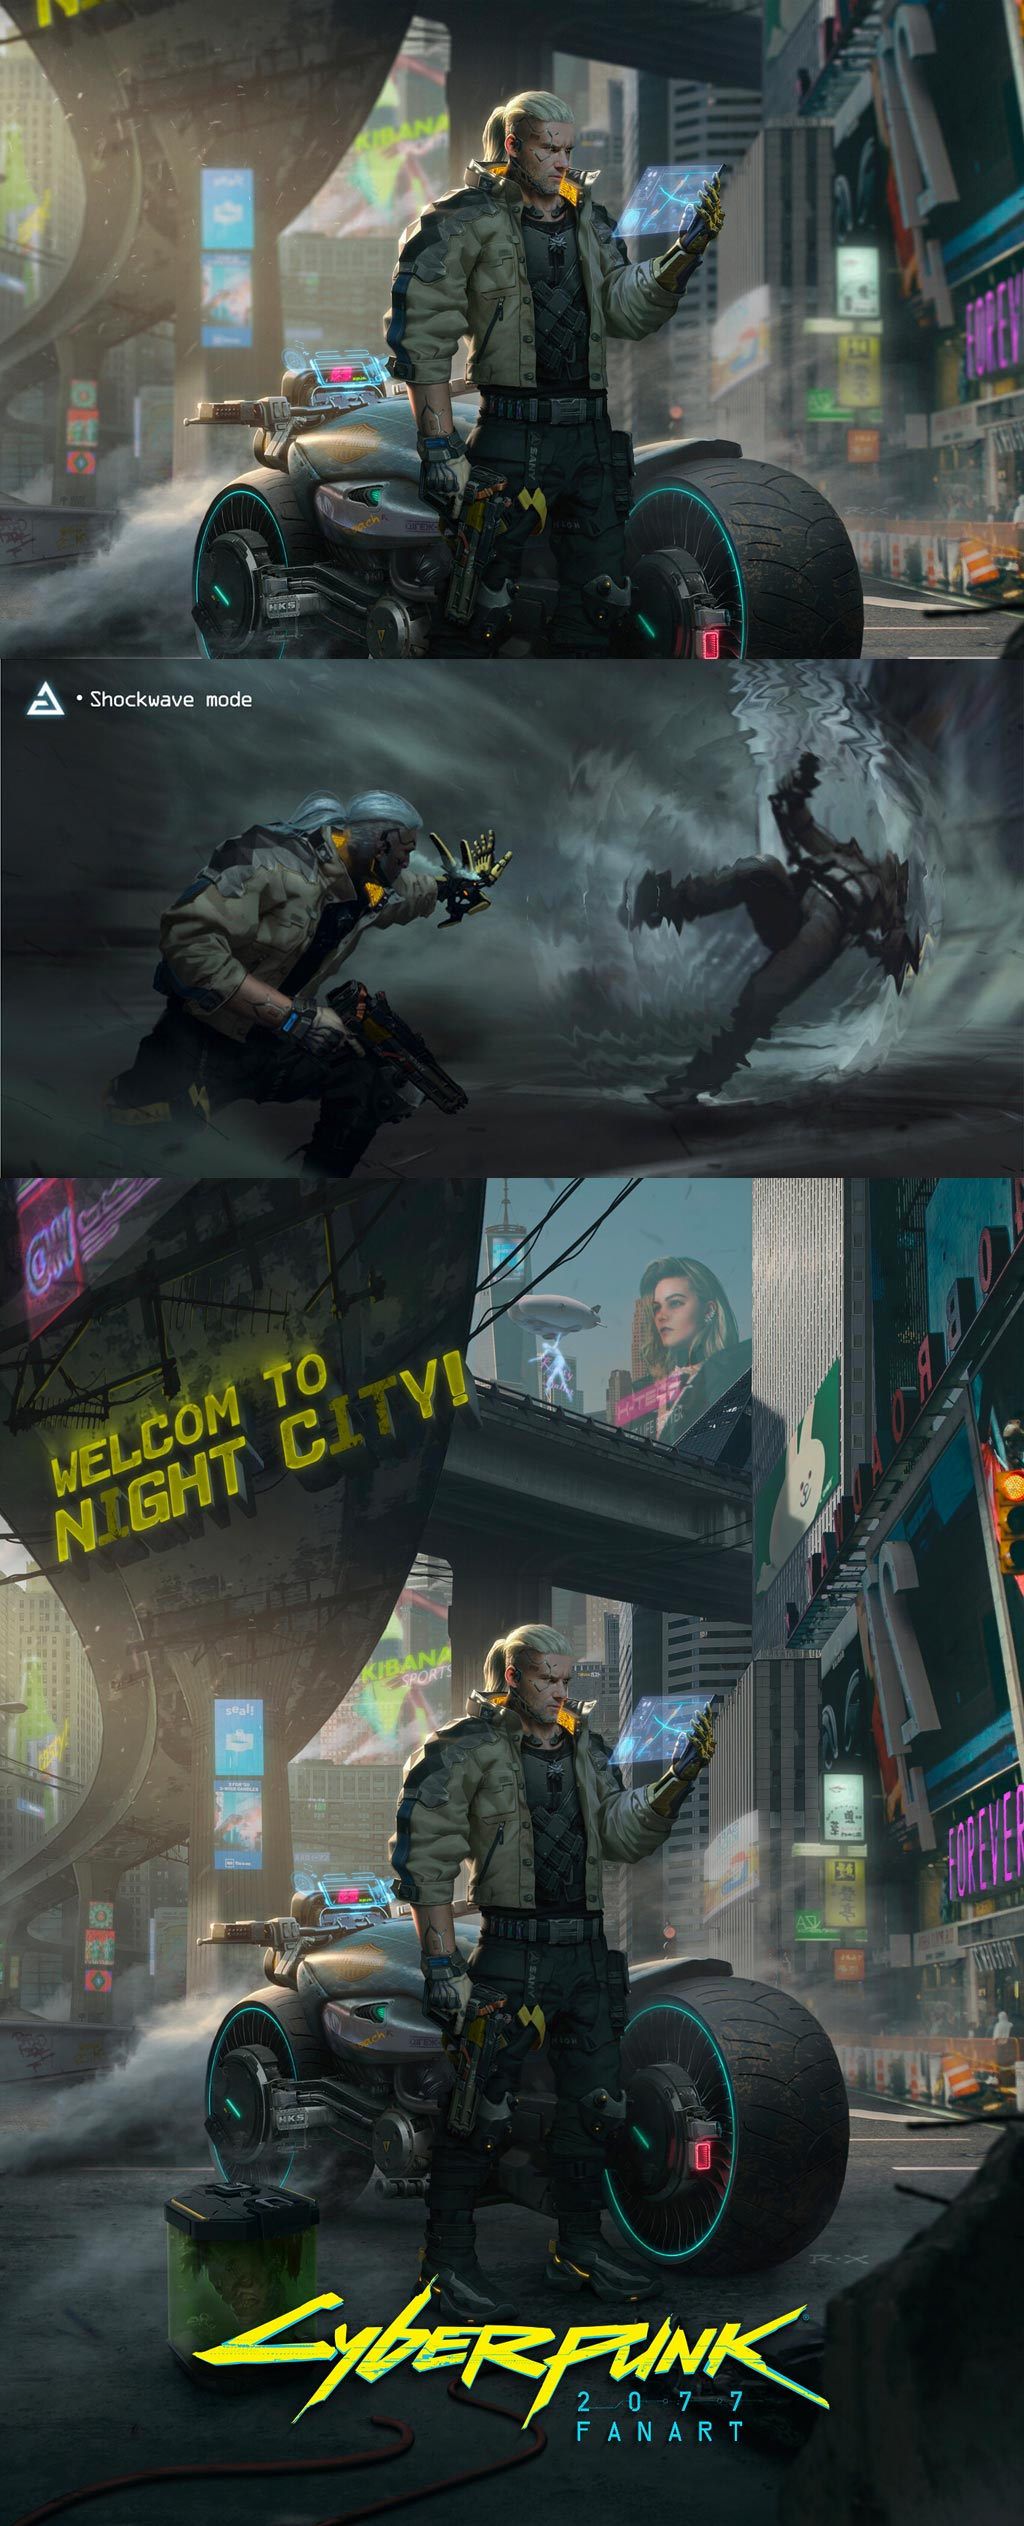 Cyberpunk 2077 X The Witcher Fan Art by R X